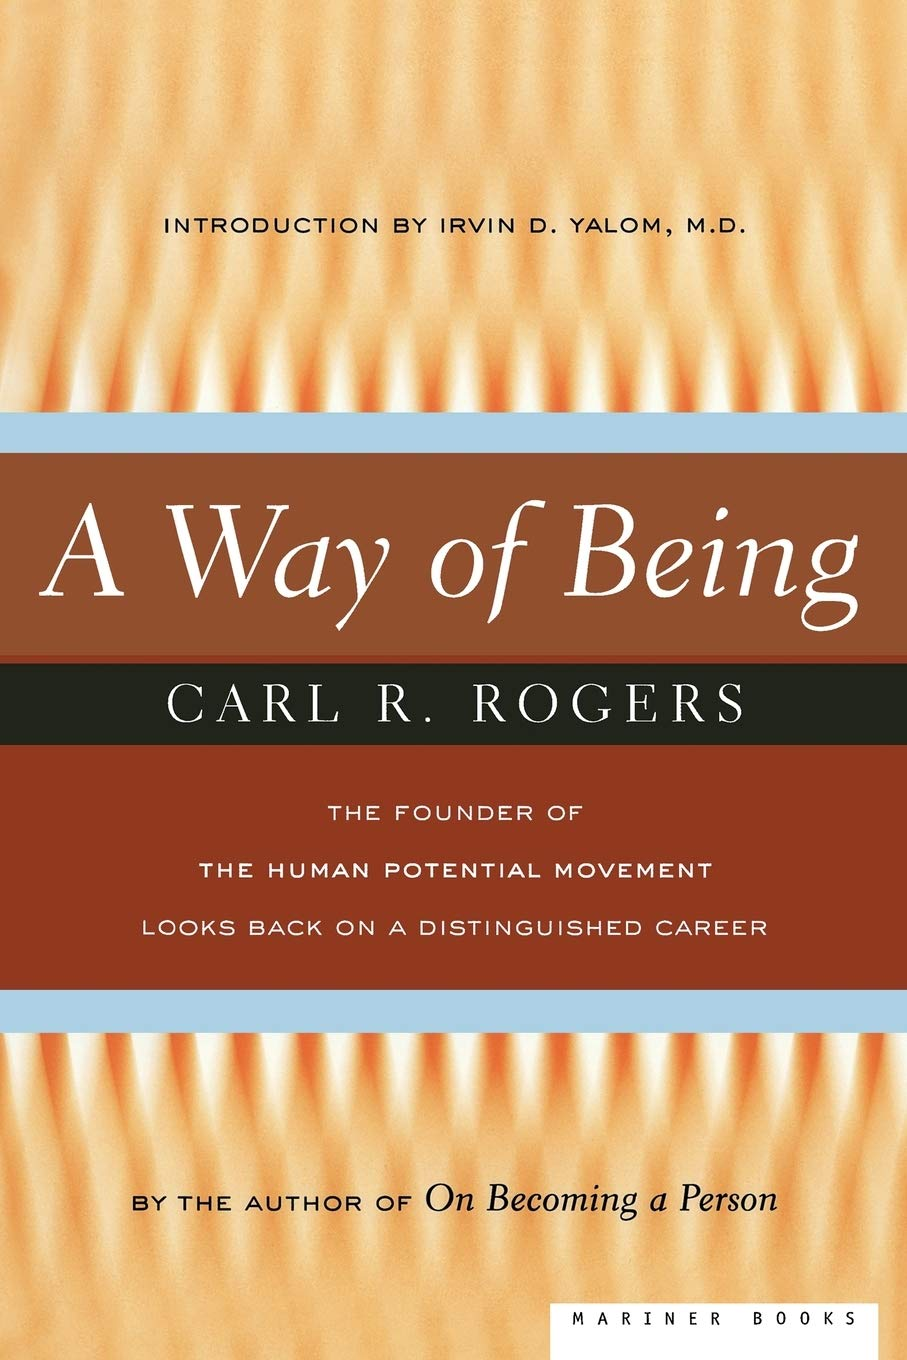 A Way of Being: Rogers, Carl: 0046442755306: Amazon.com: Books